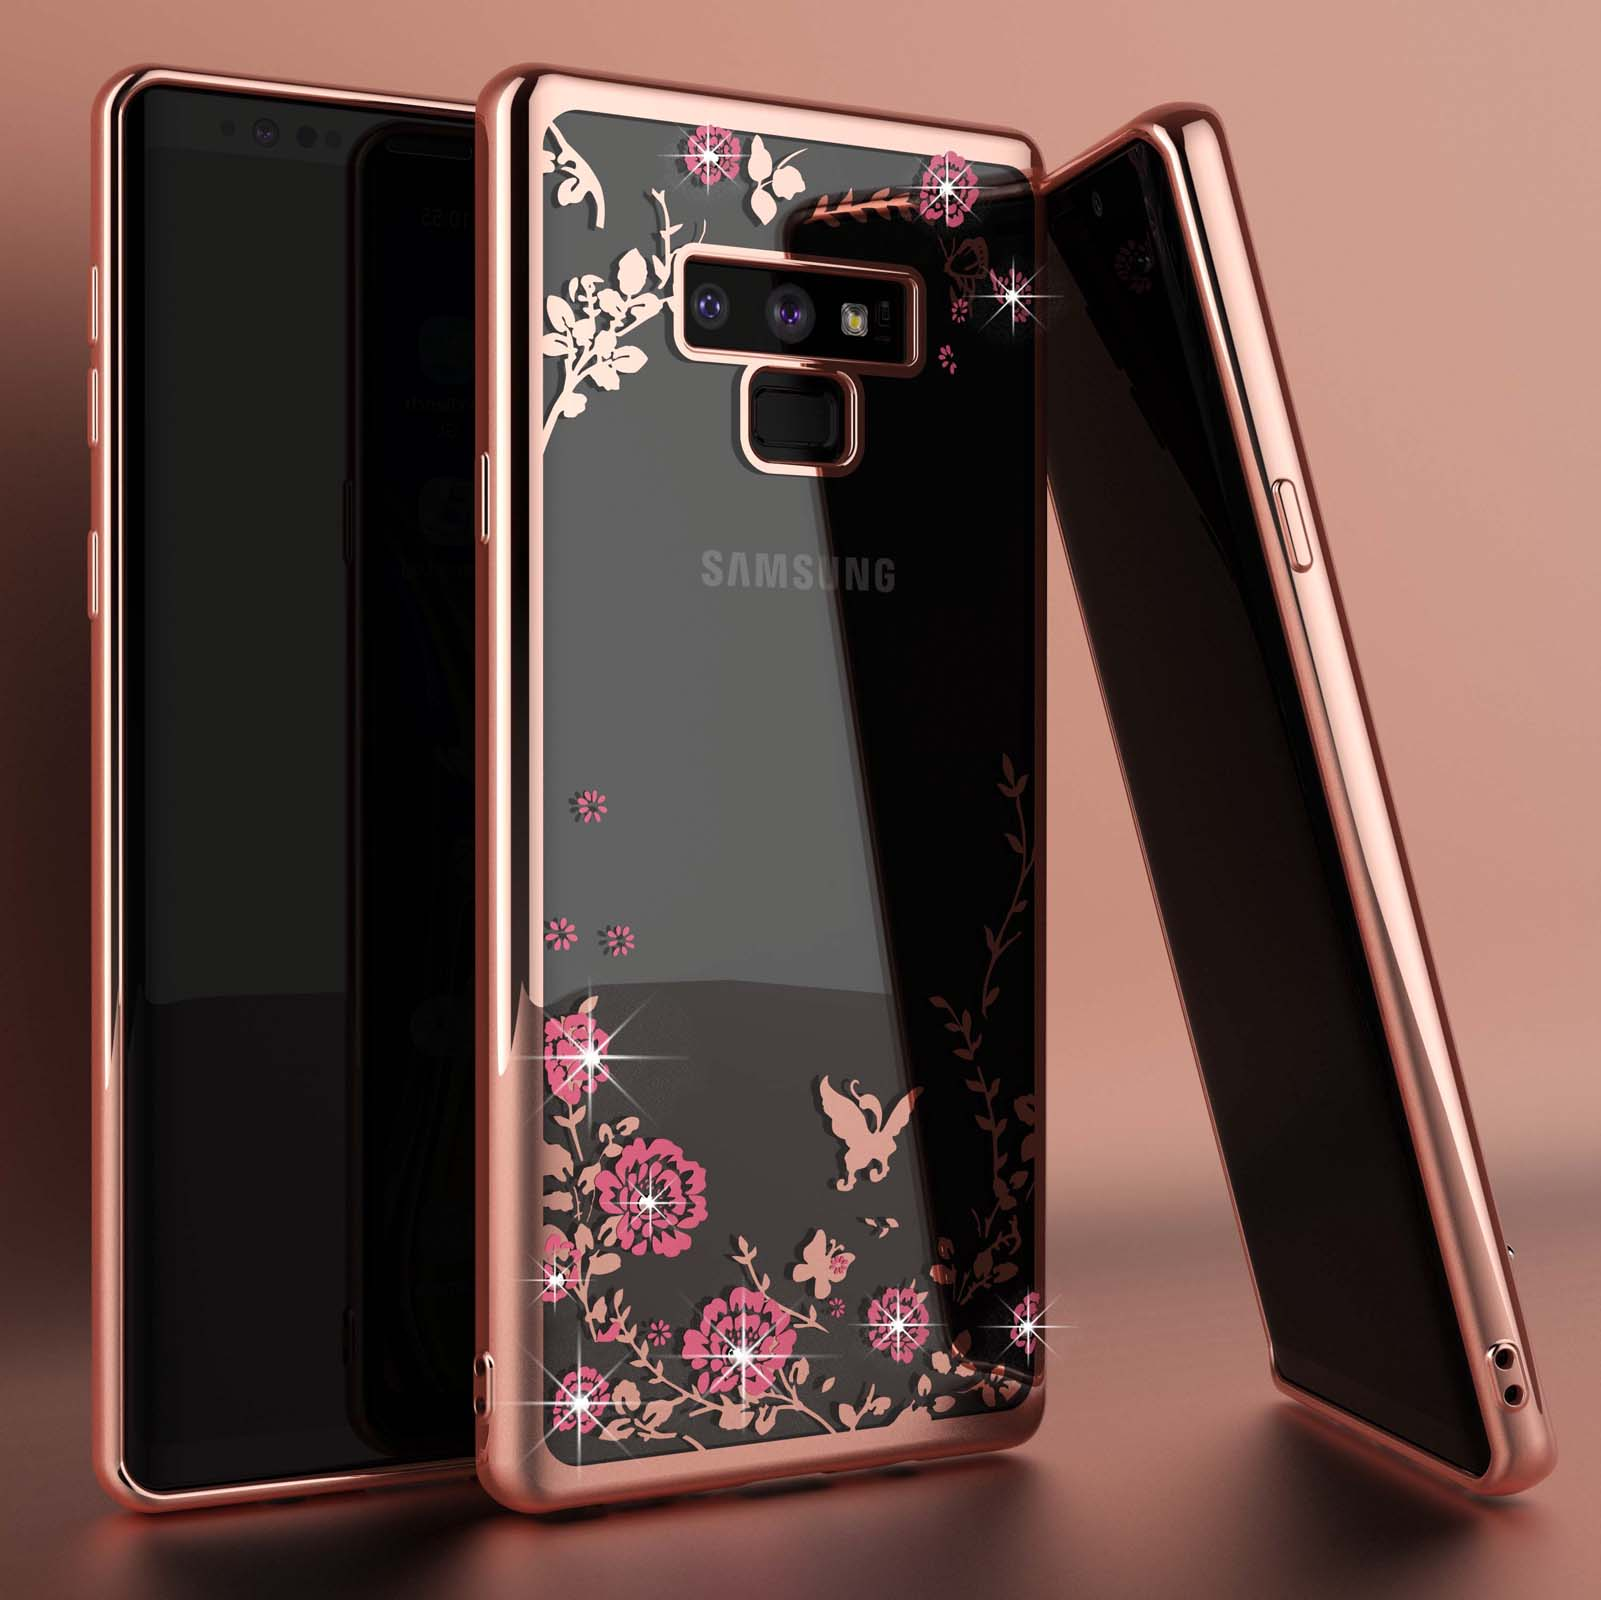 Galaxy S10 Plus / S10 / S10e / S9 Plus / S9 / Note 9 / S8 Plus / S8 / S7 Edge / S7 Case, Njjex Glitter Sparkly Diamond Secret Garden Floral Butterfly Clear Back Soft TPU Case Bling Shiny Rhinestone